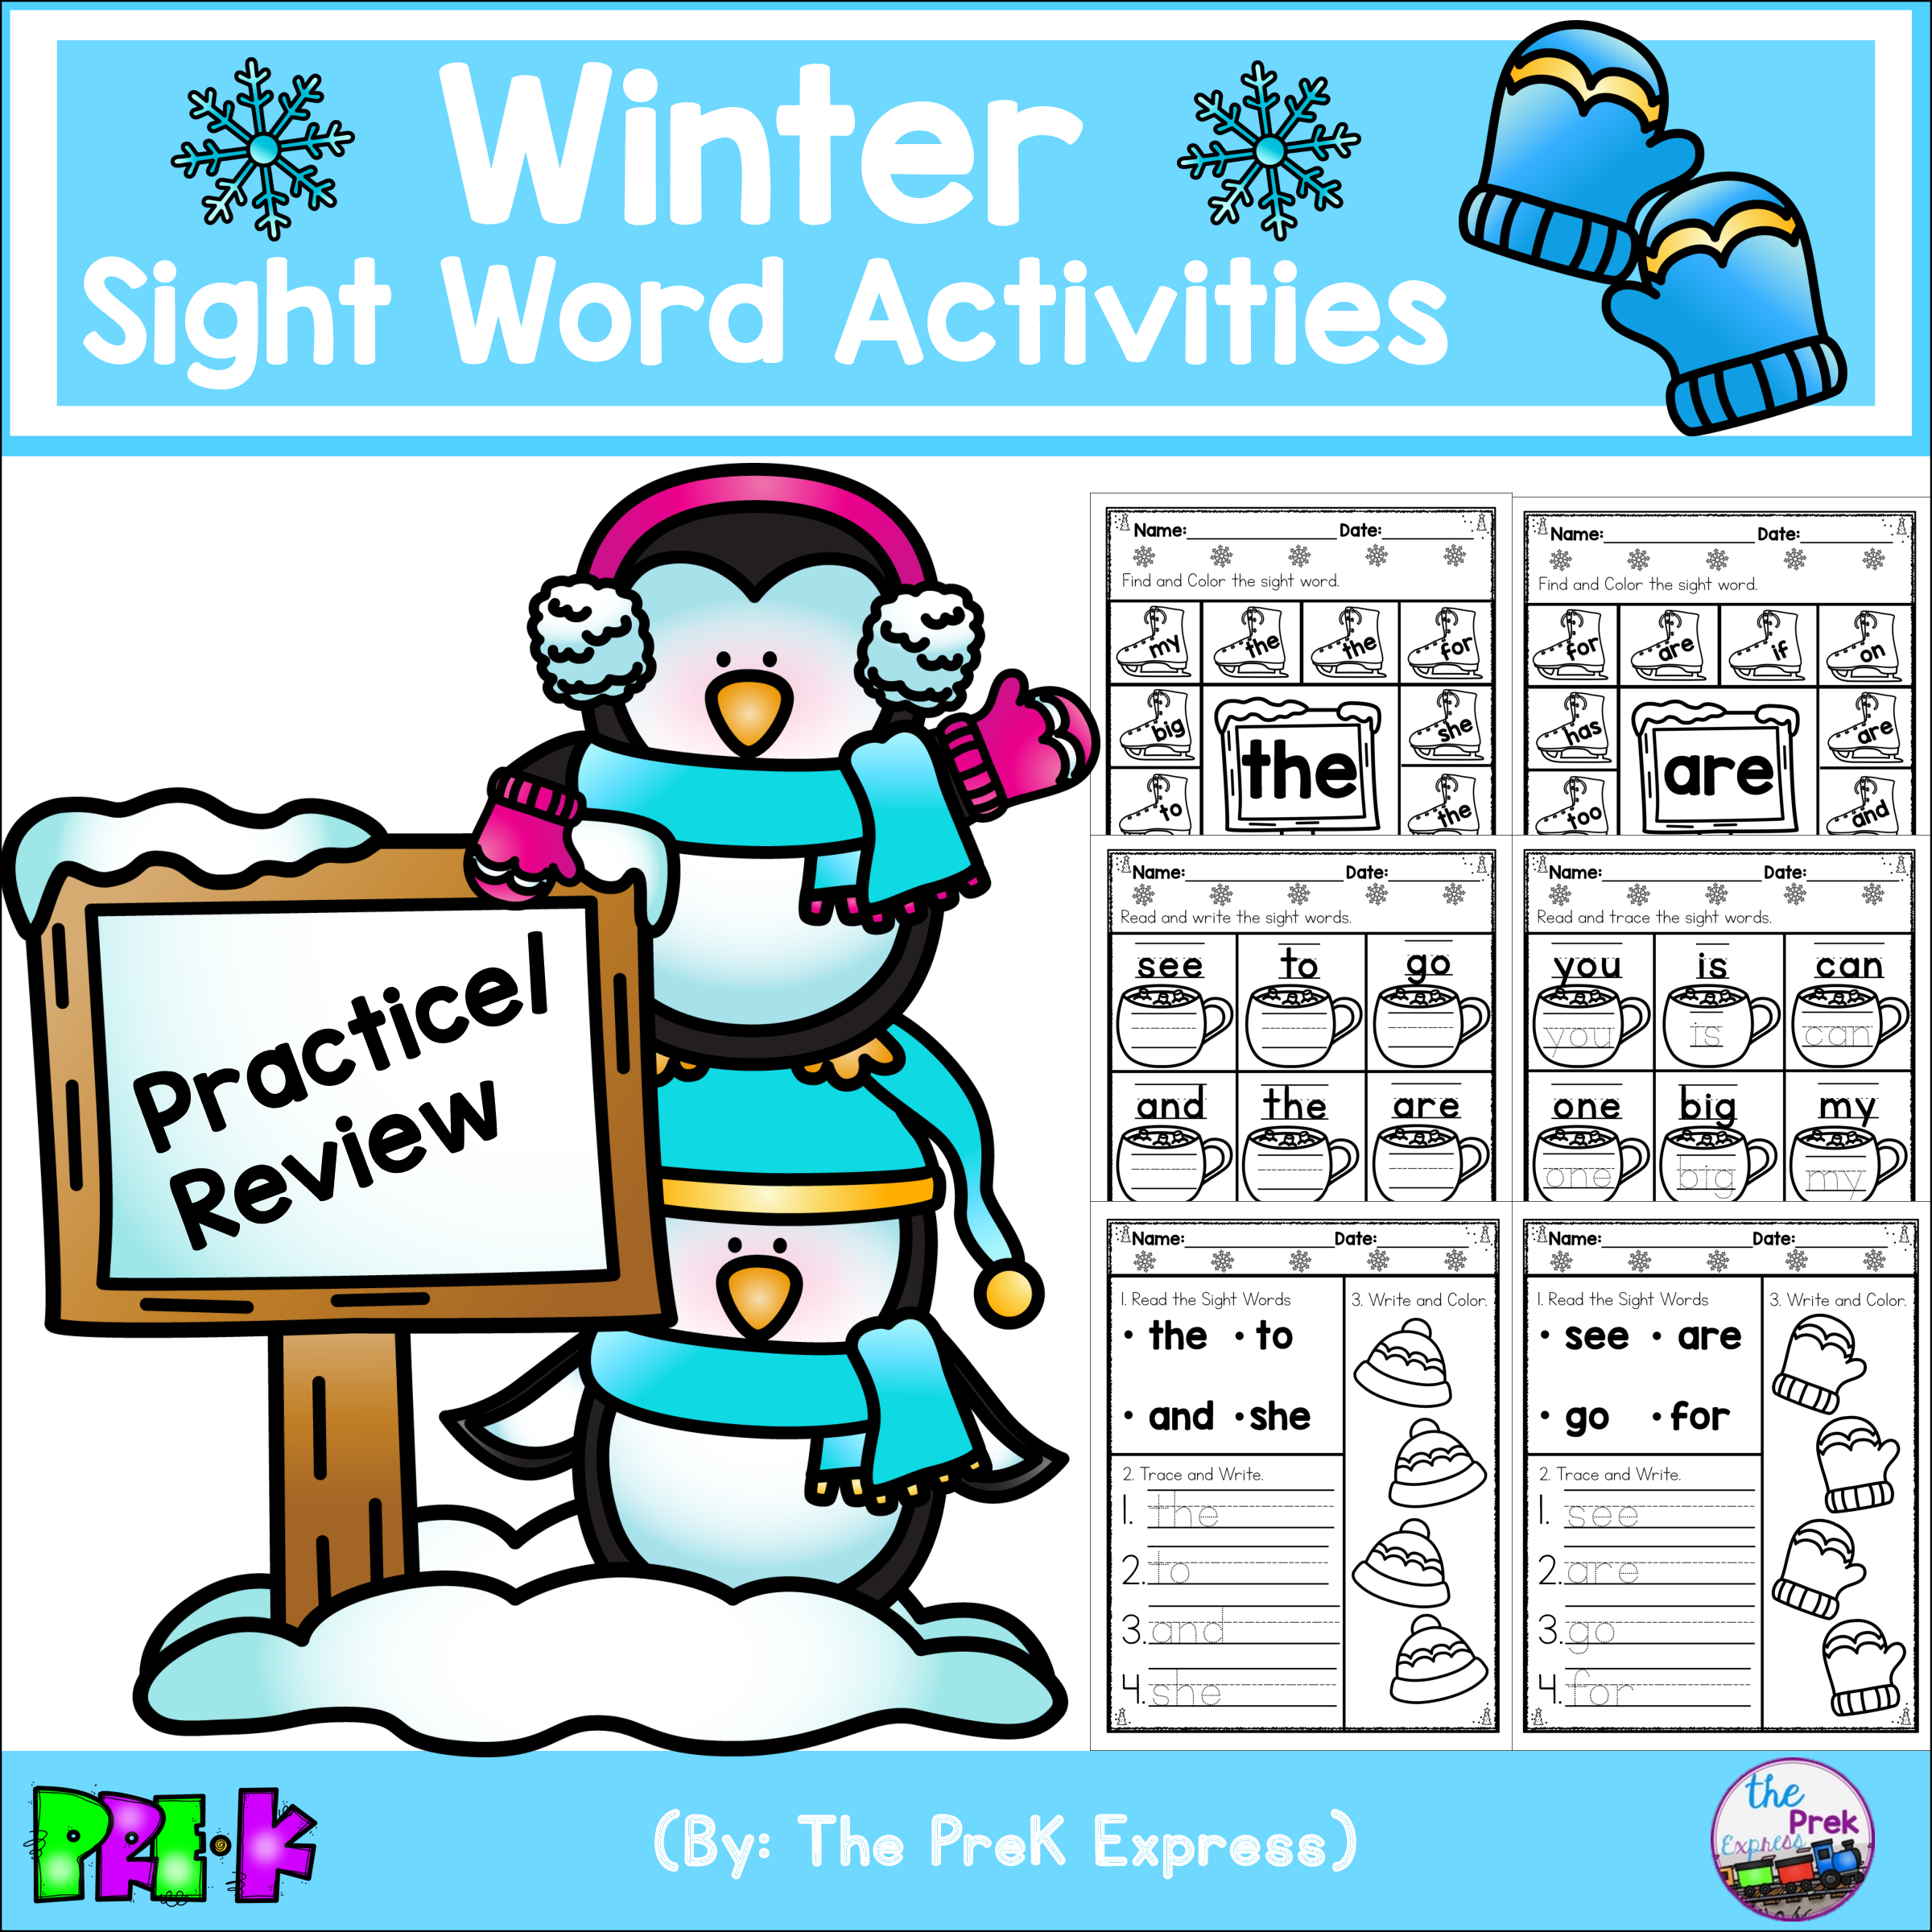 Winter Sight Word Activities